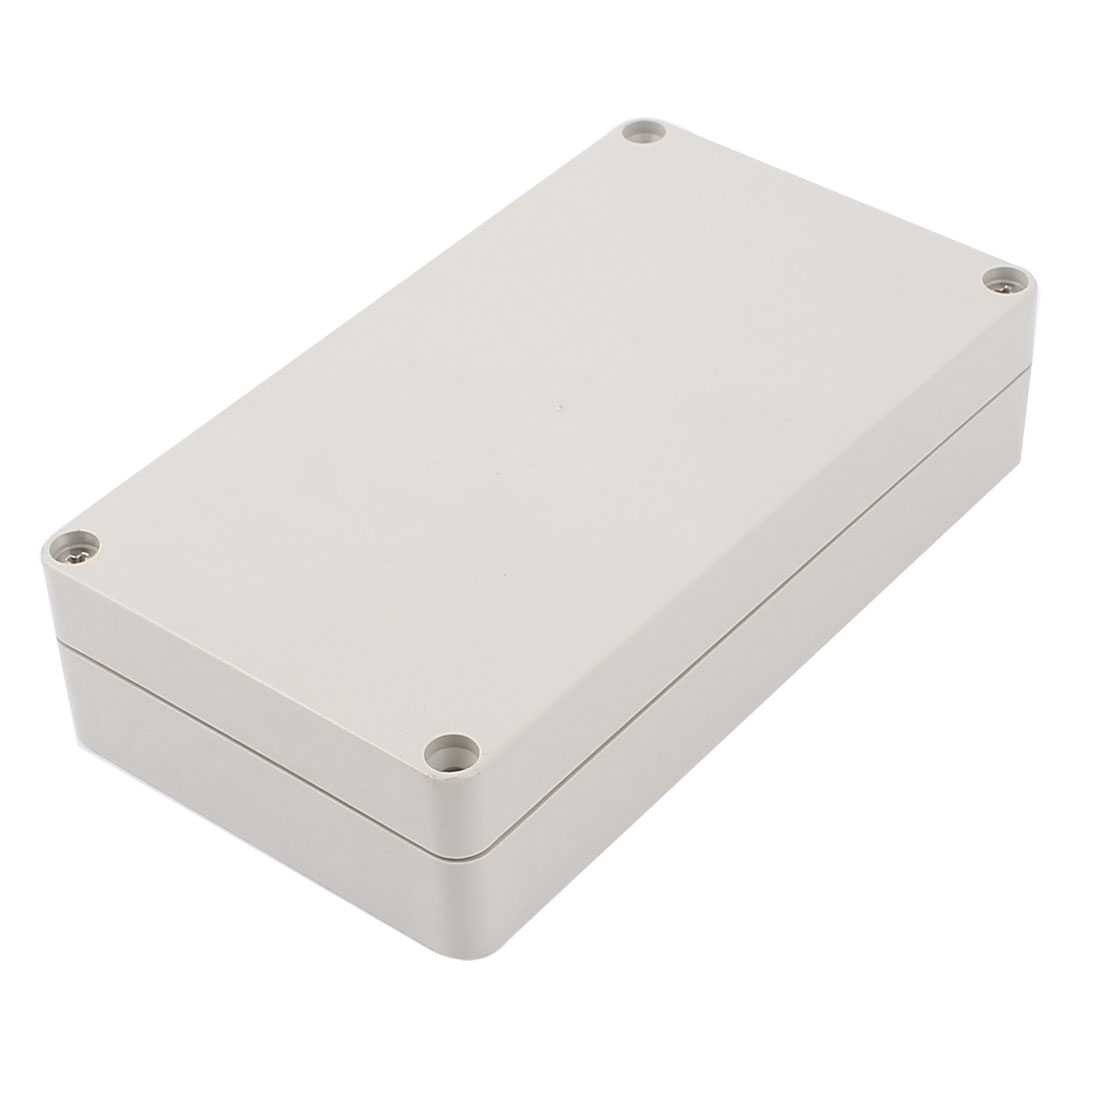 158 x 90 x 40mm Dustproof IP65 Plastic Enclosure Case Power Junction Box